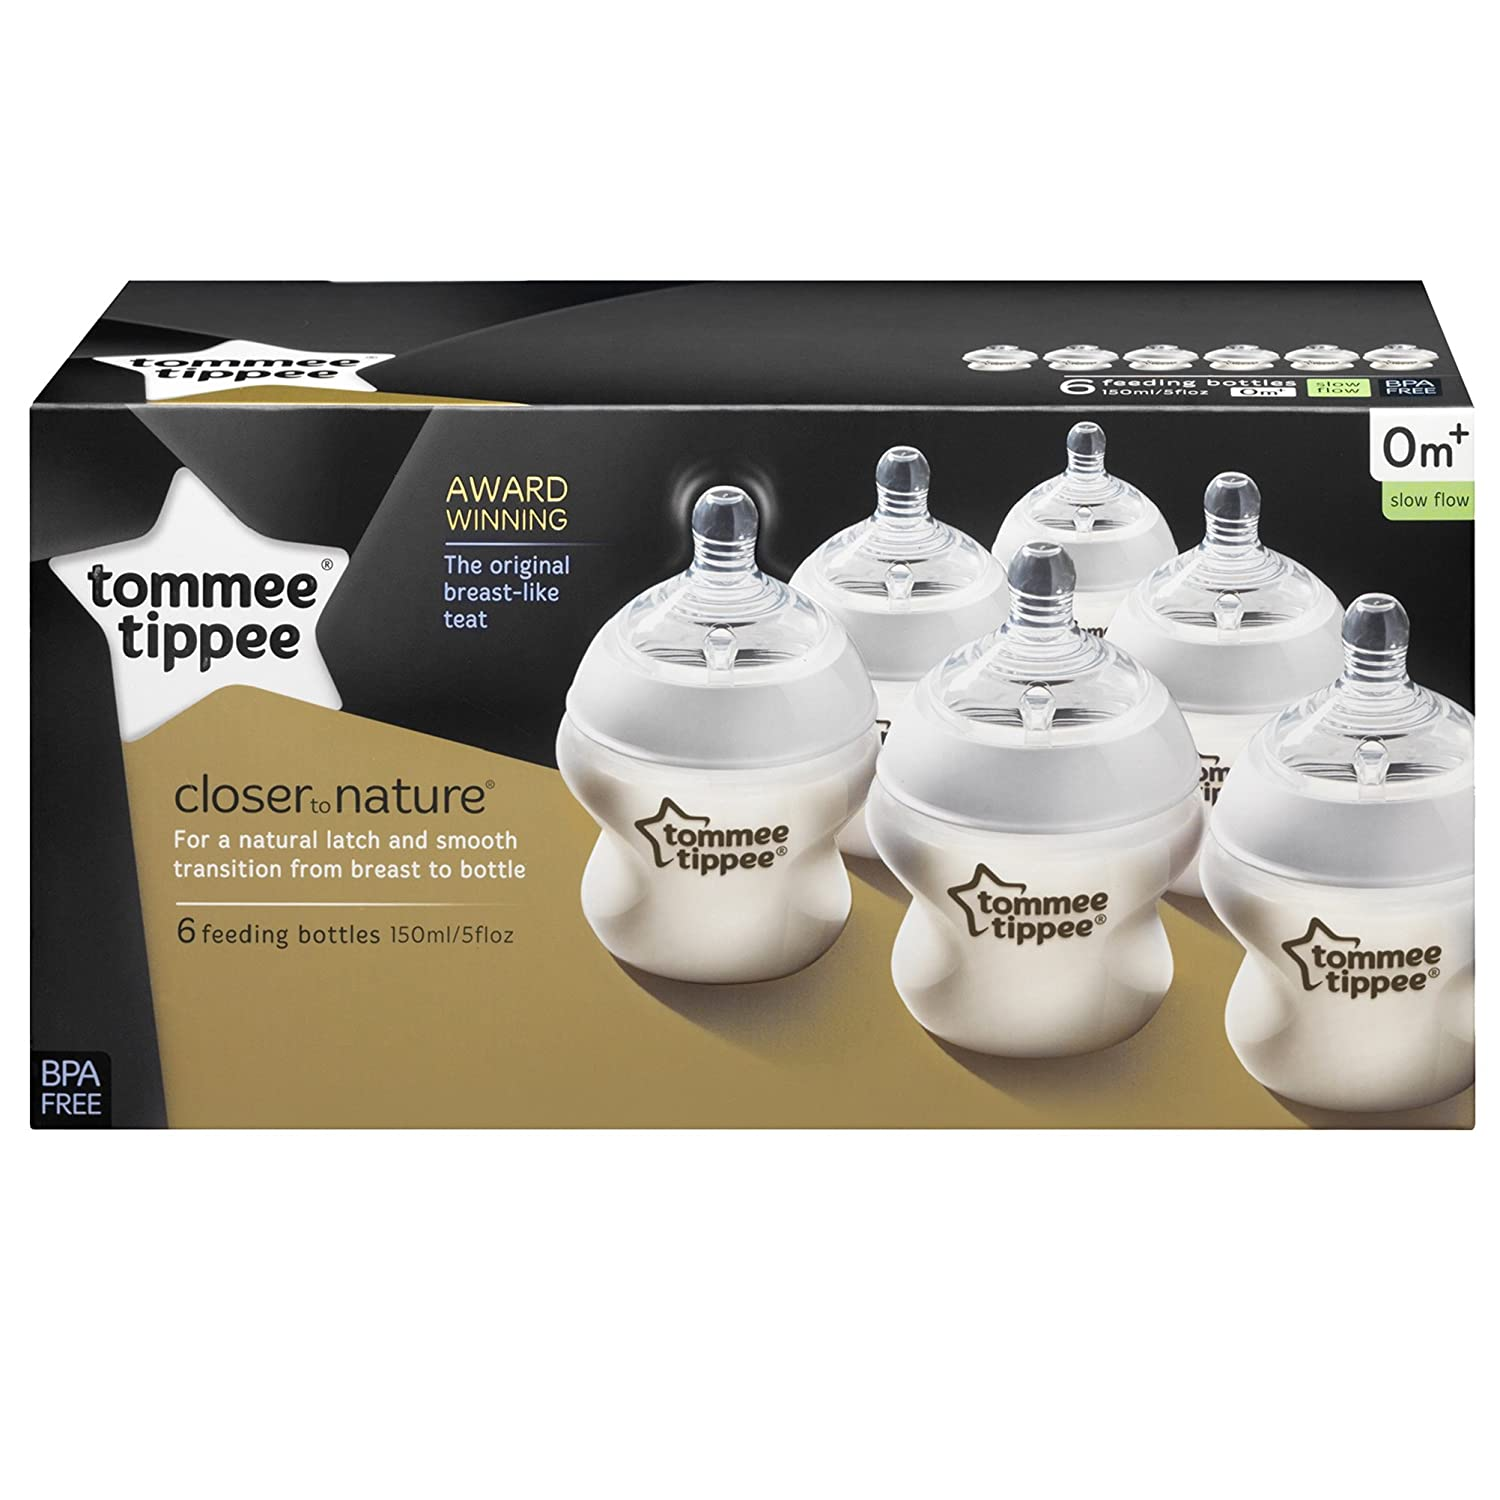 6-pack Tommee Tippee Closer to Nature 150 ml//5fl oz Feeding Bottles